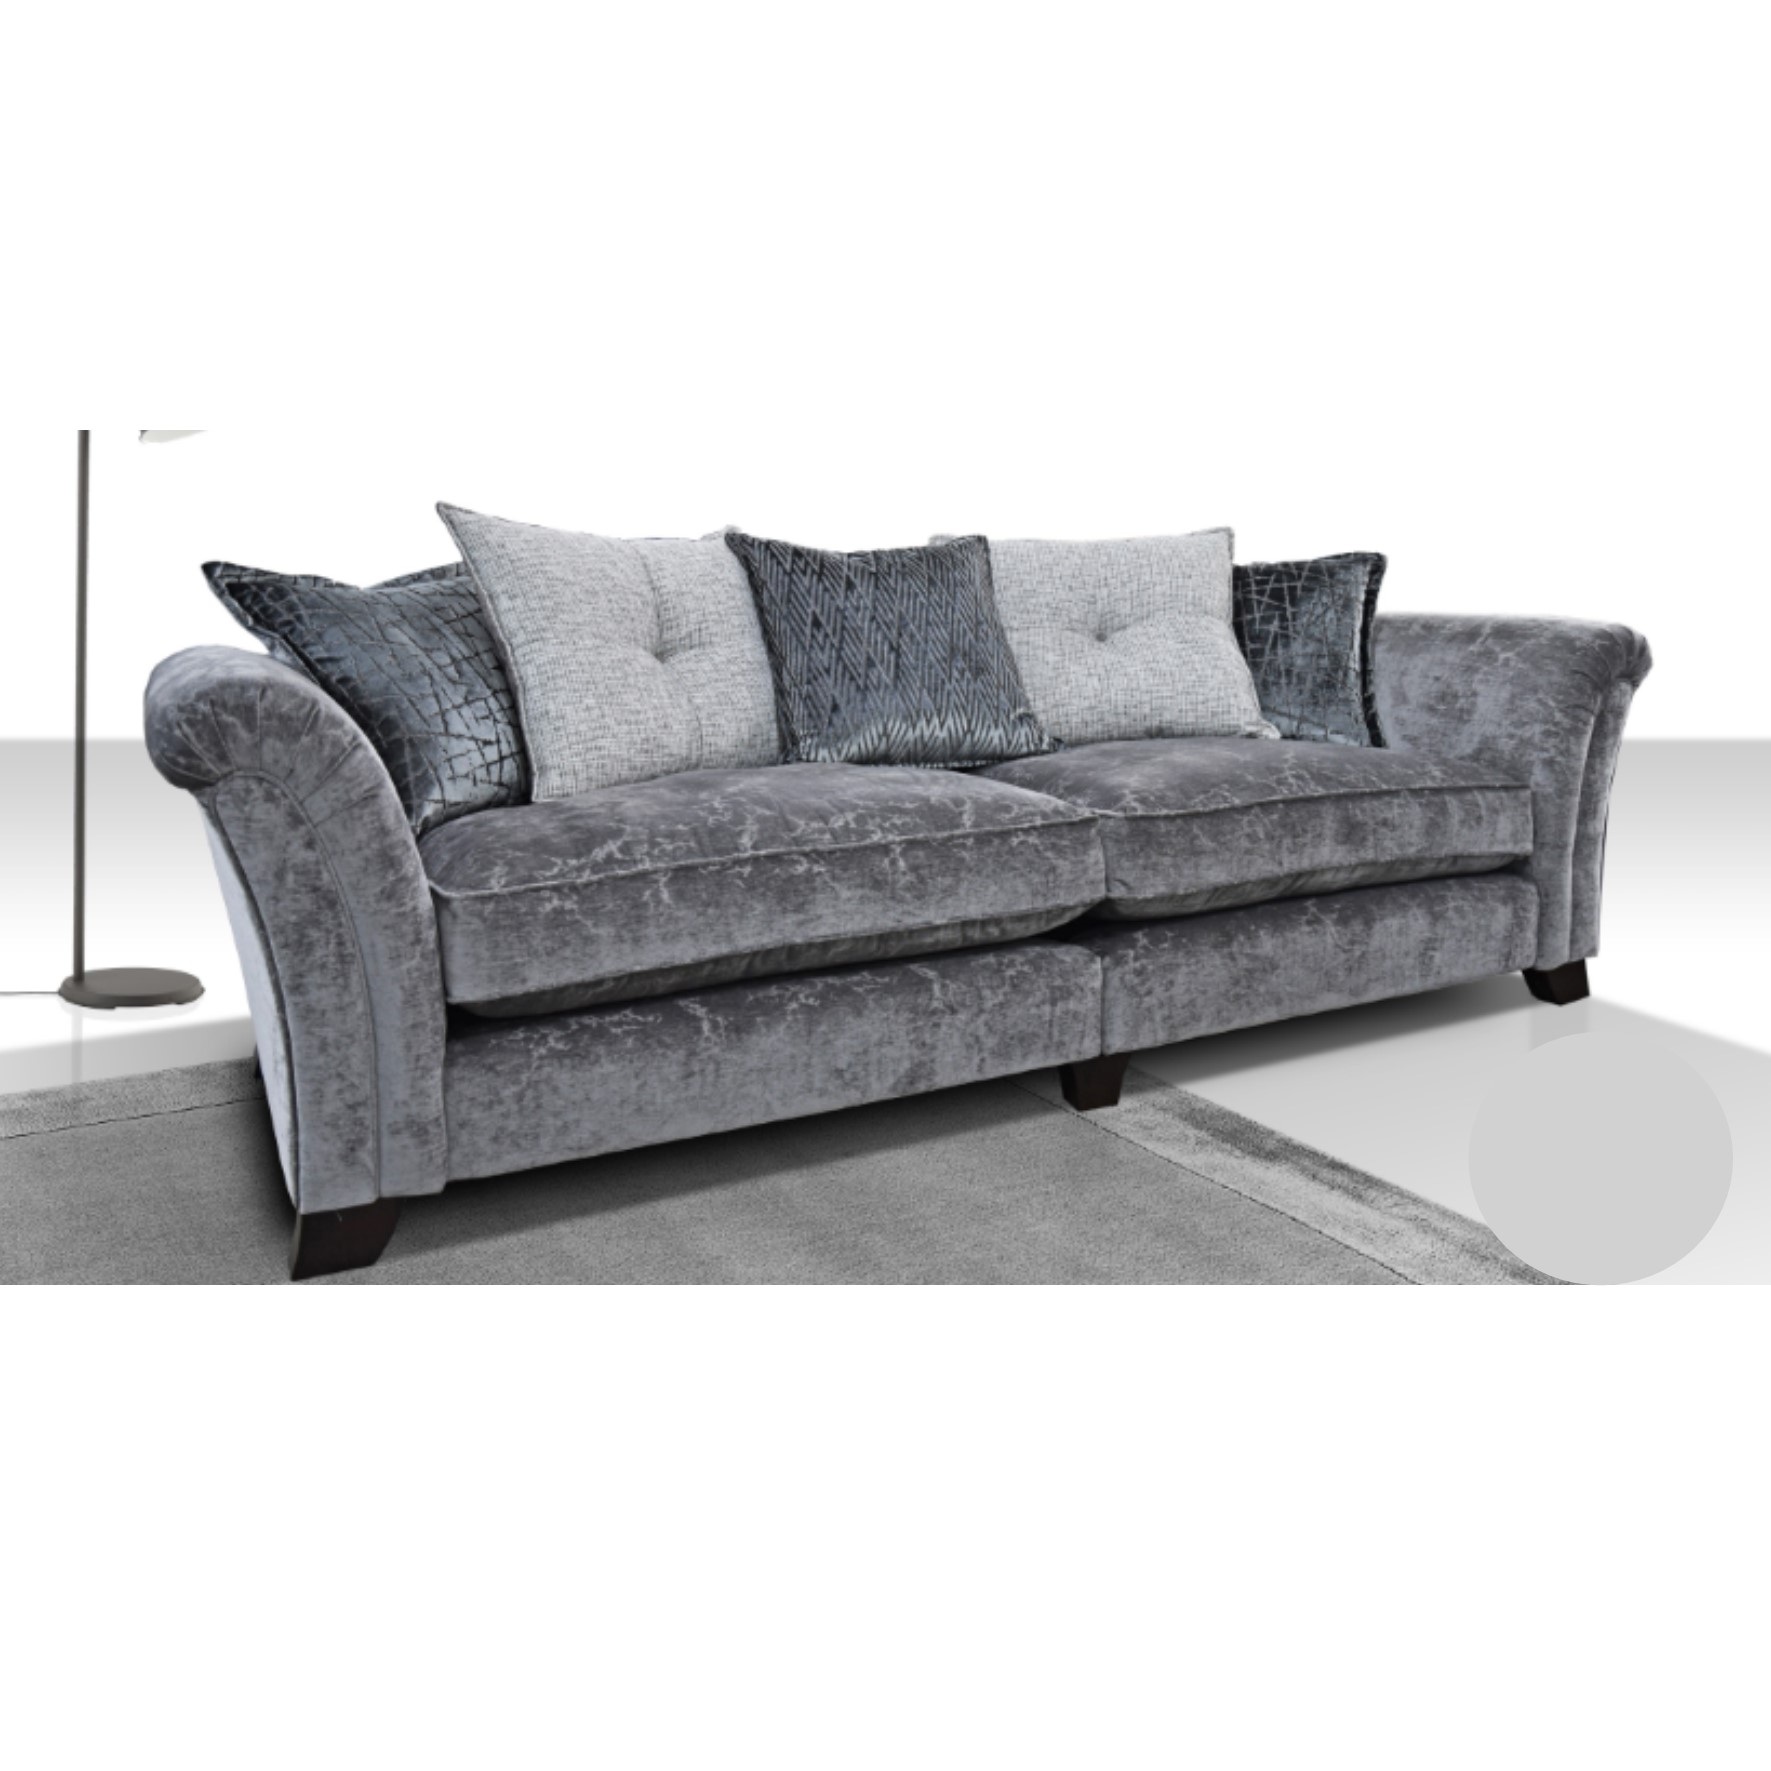 Anna sofa collection